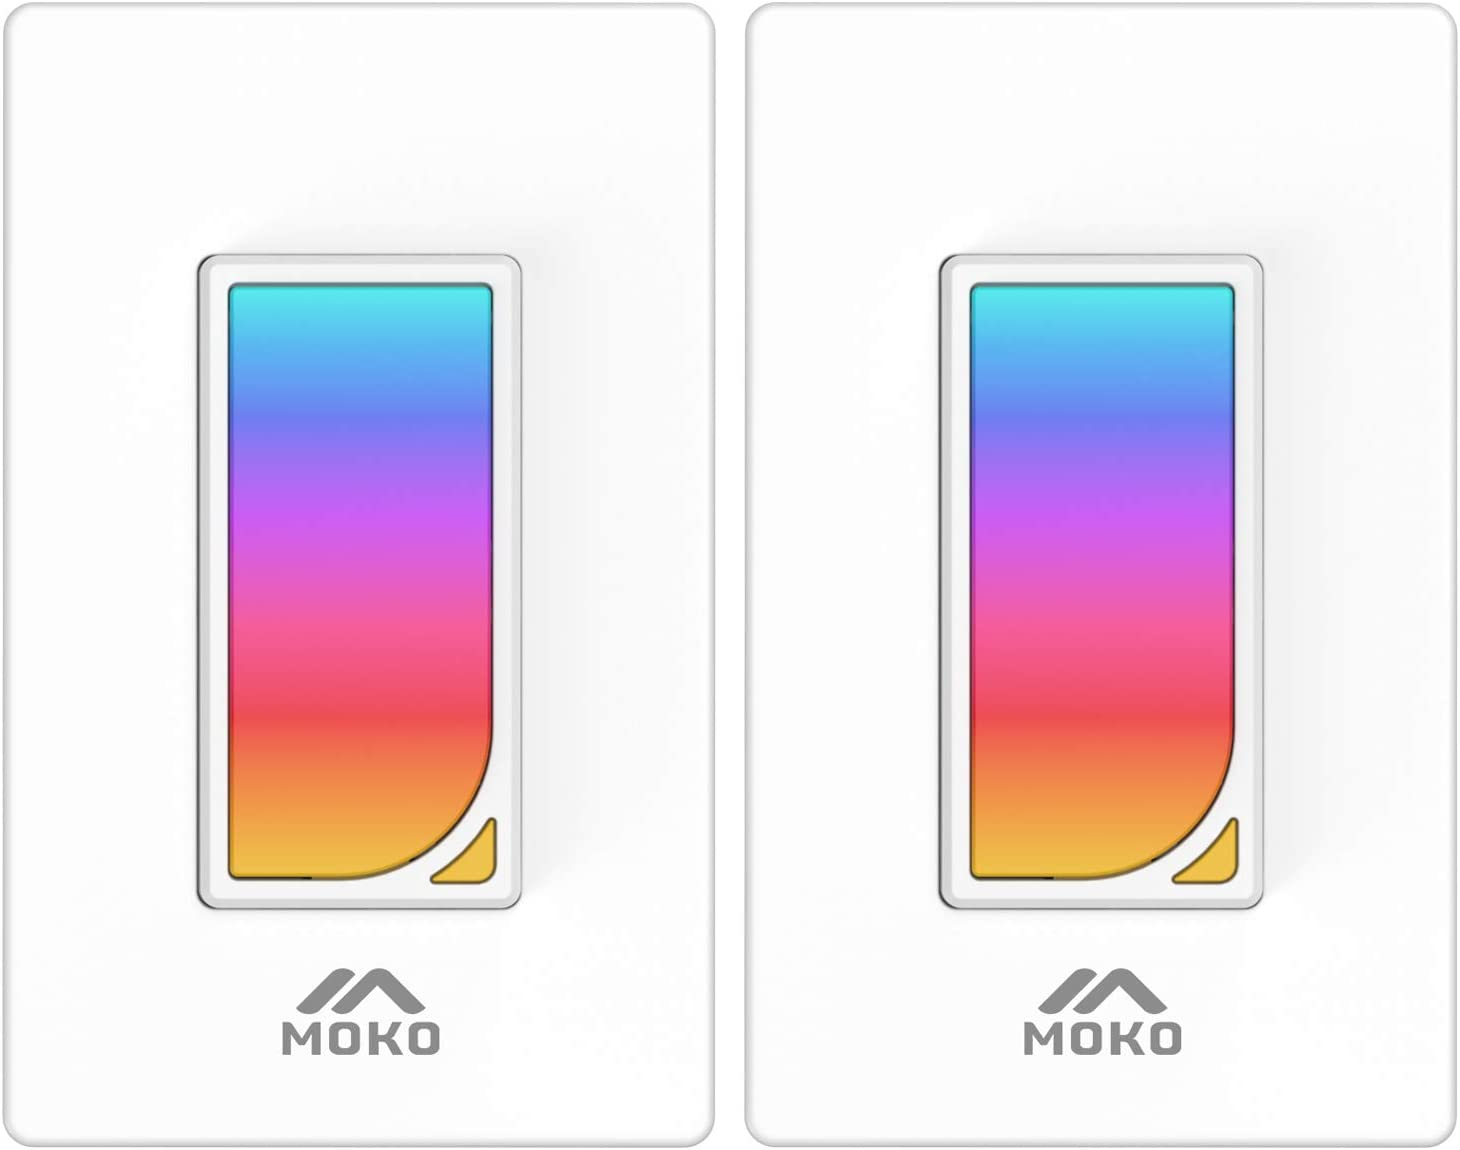 MoKo Smart Switch, 2 Pack WiFi Light Switch with Built-in RGB Dimmer Night Light, Remote/Voice Control, Work with Alexa/Google Home/SmartThings, Timer Function, Only Supports 2.4GHz Network - White